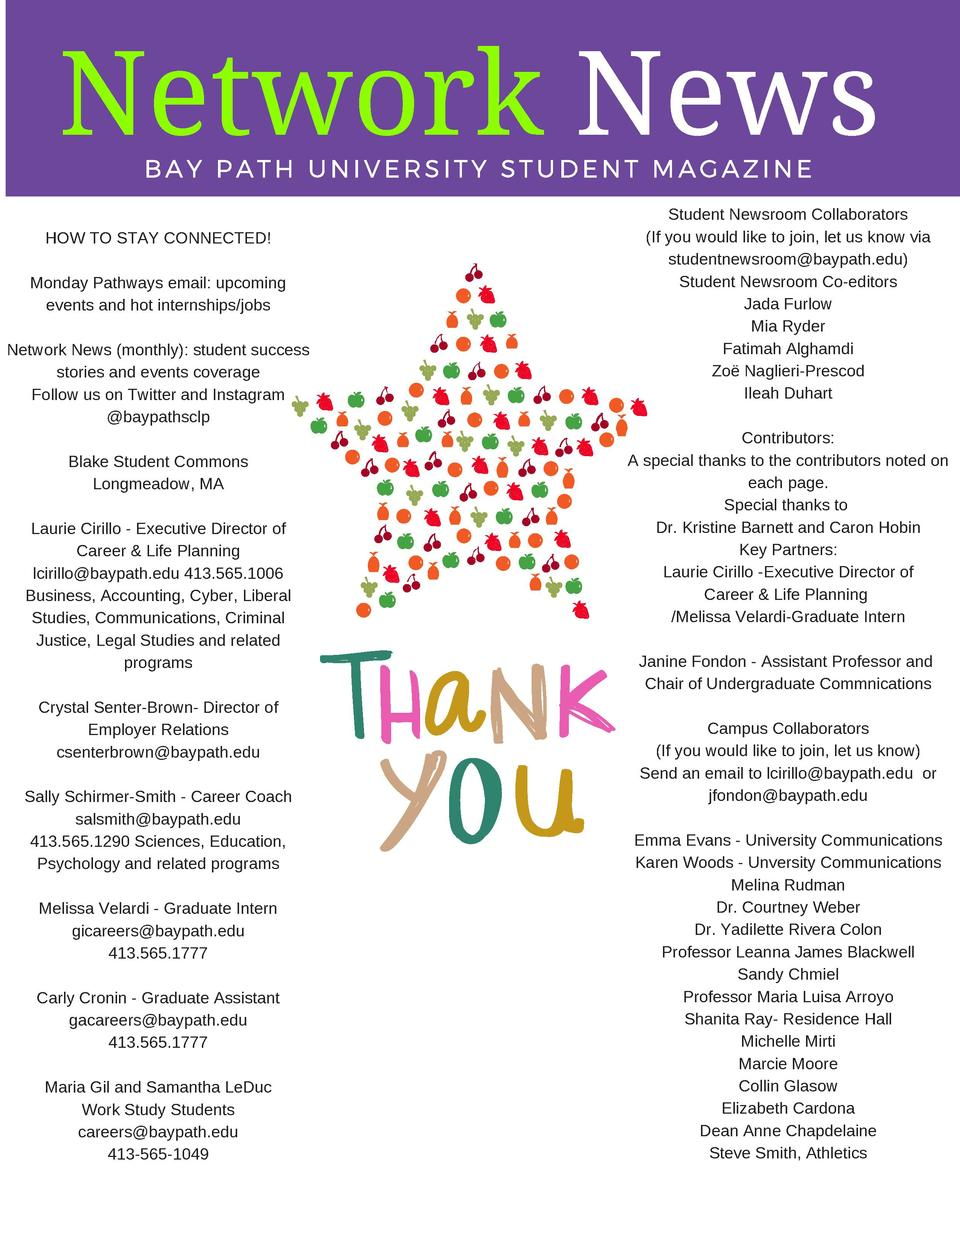 Network News BAY PATH UNIVERSITY STUDENT MAGAZINE    HOW TO STAY CONNECTED  Monday Pathways email  upcoming events and hot...